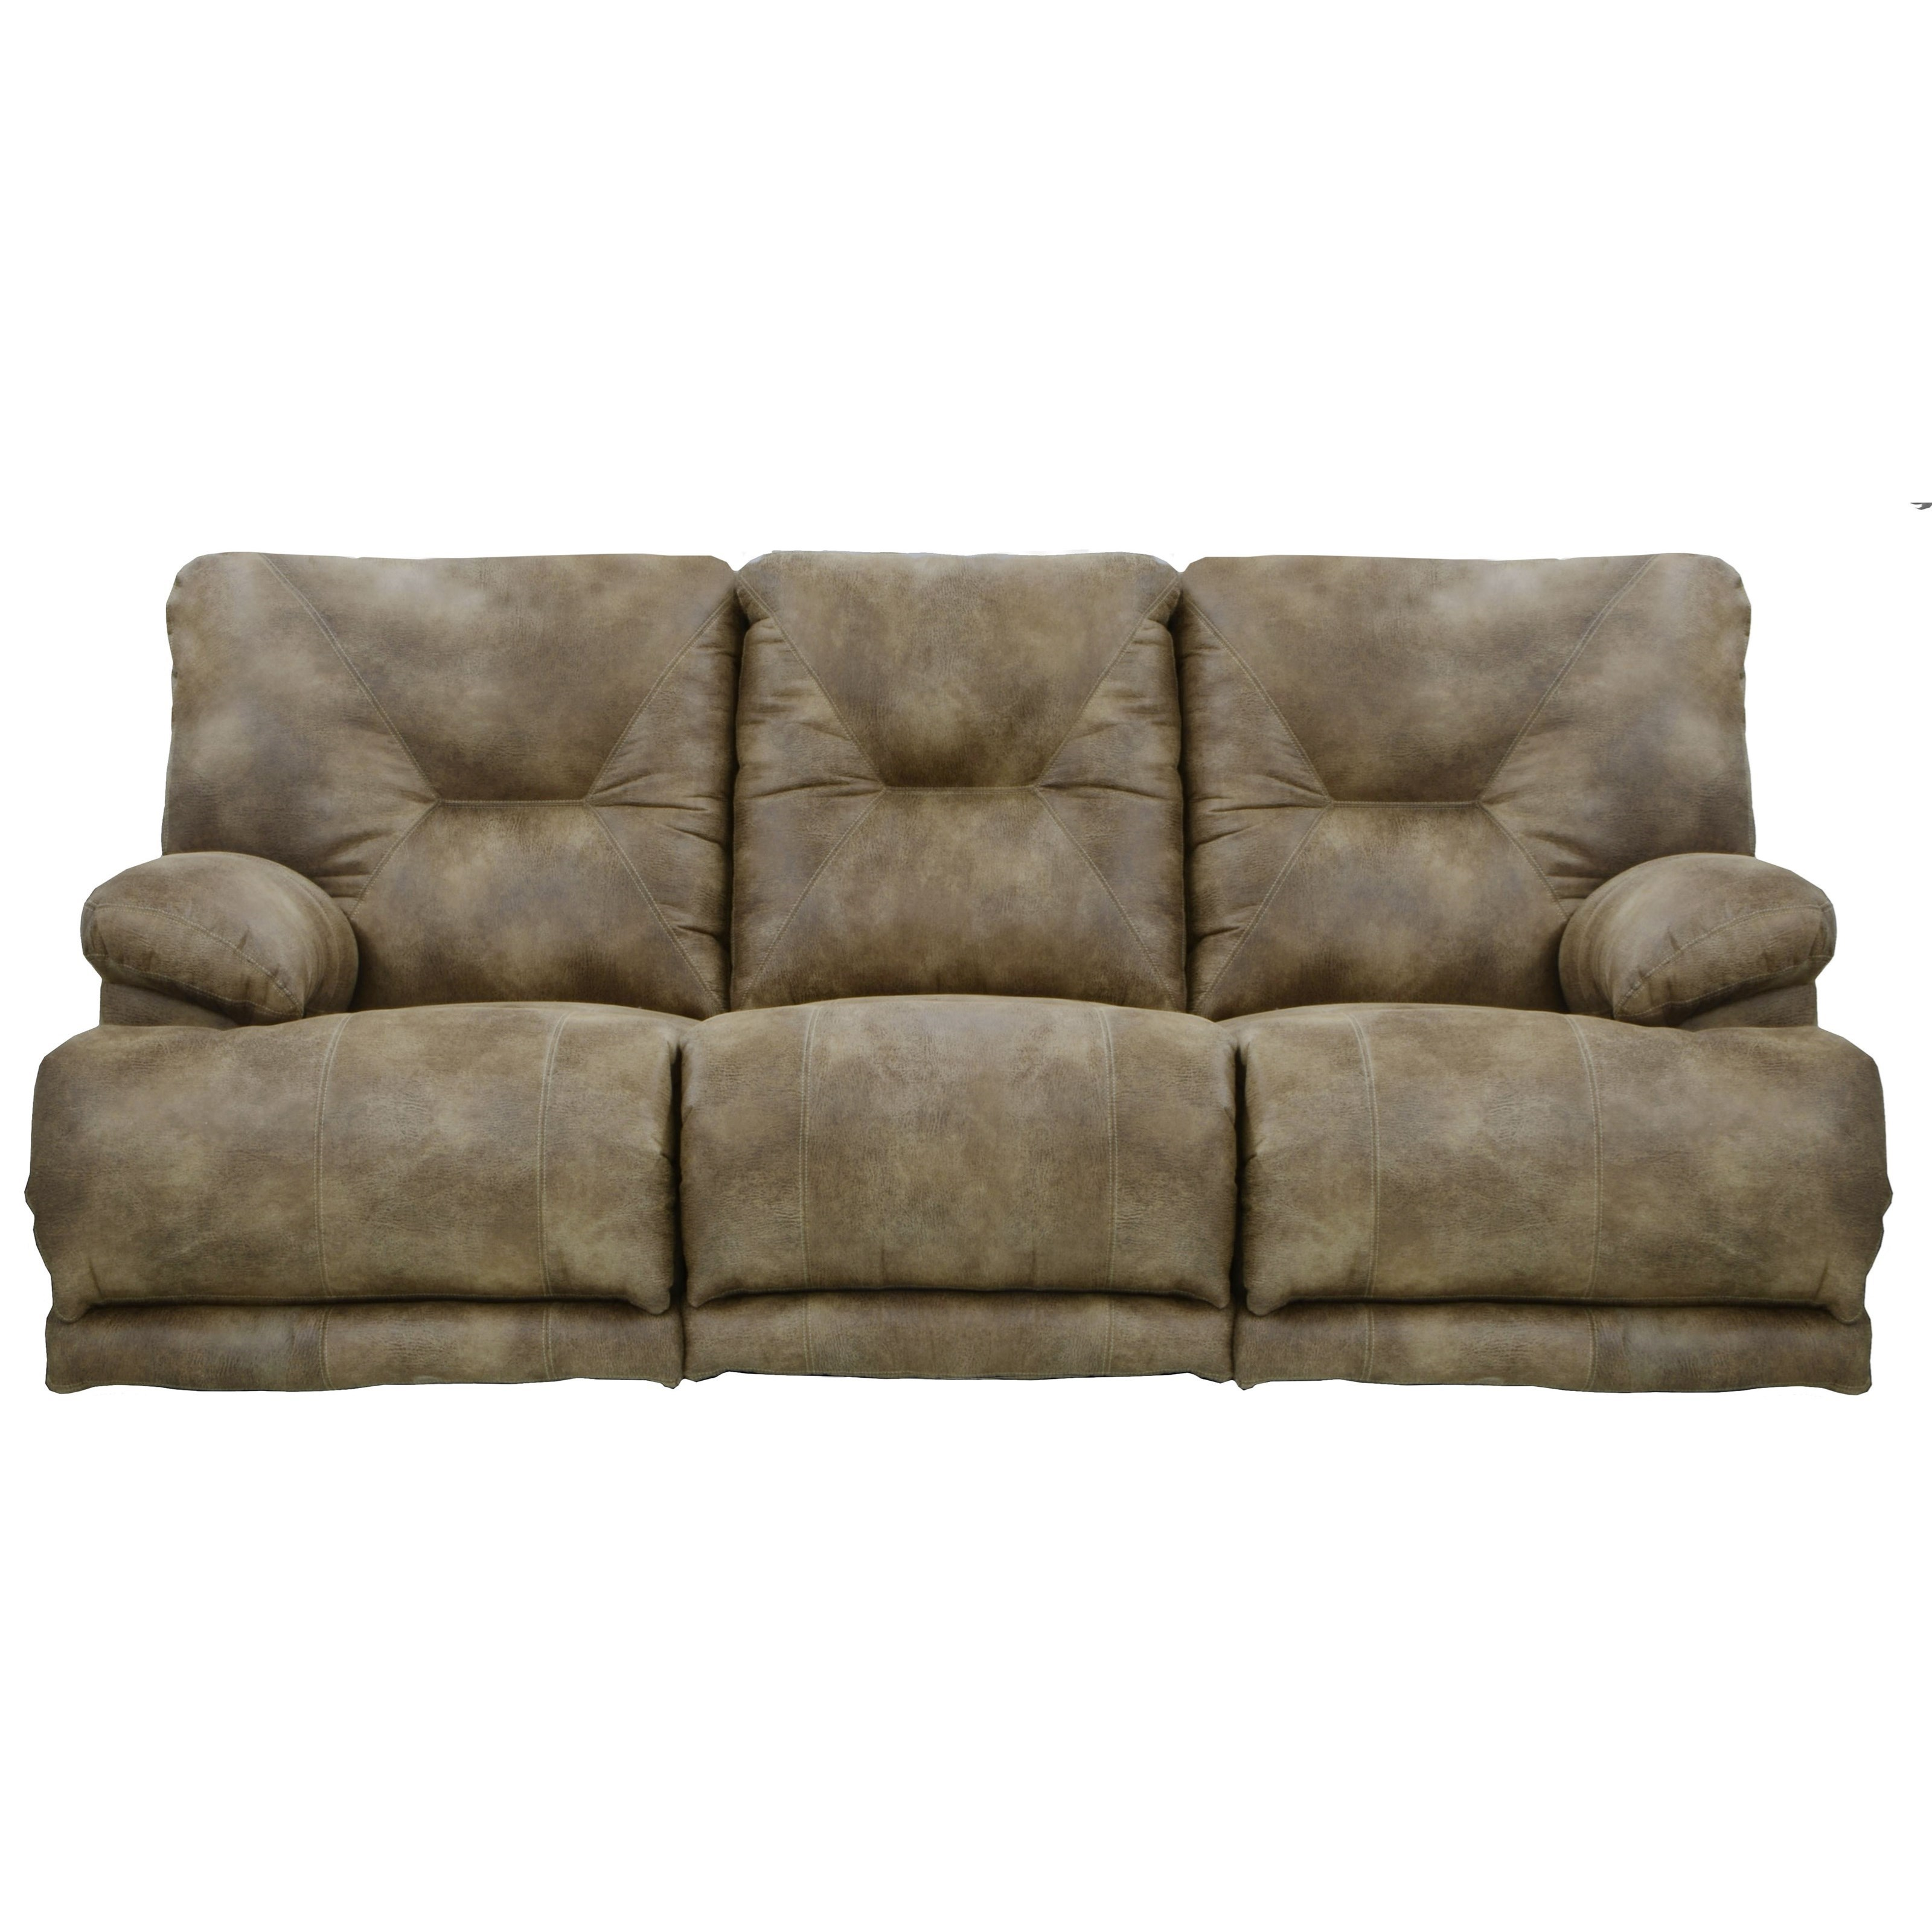 Catnapper Voyager Lay Flat Reclining Sofa With Fold Down Middletable